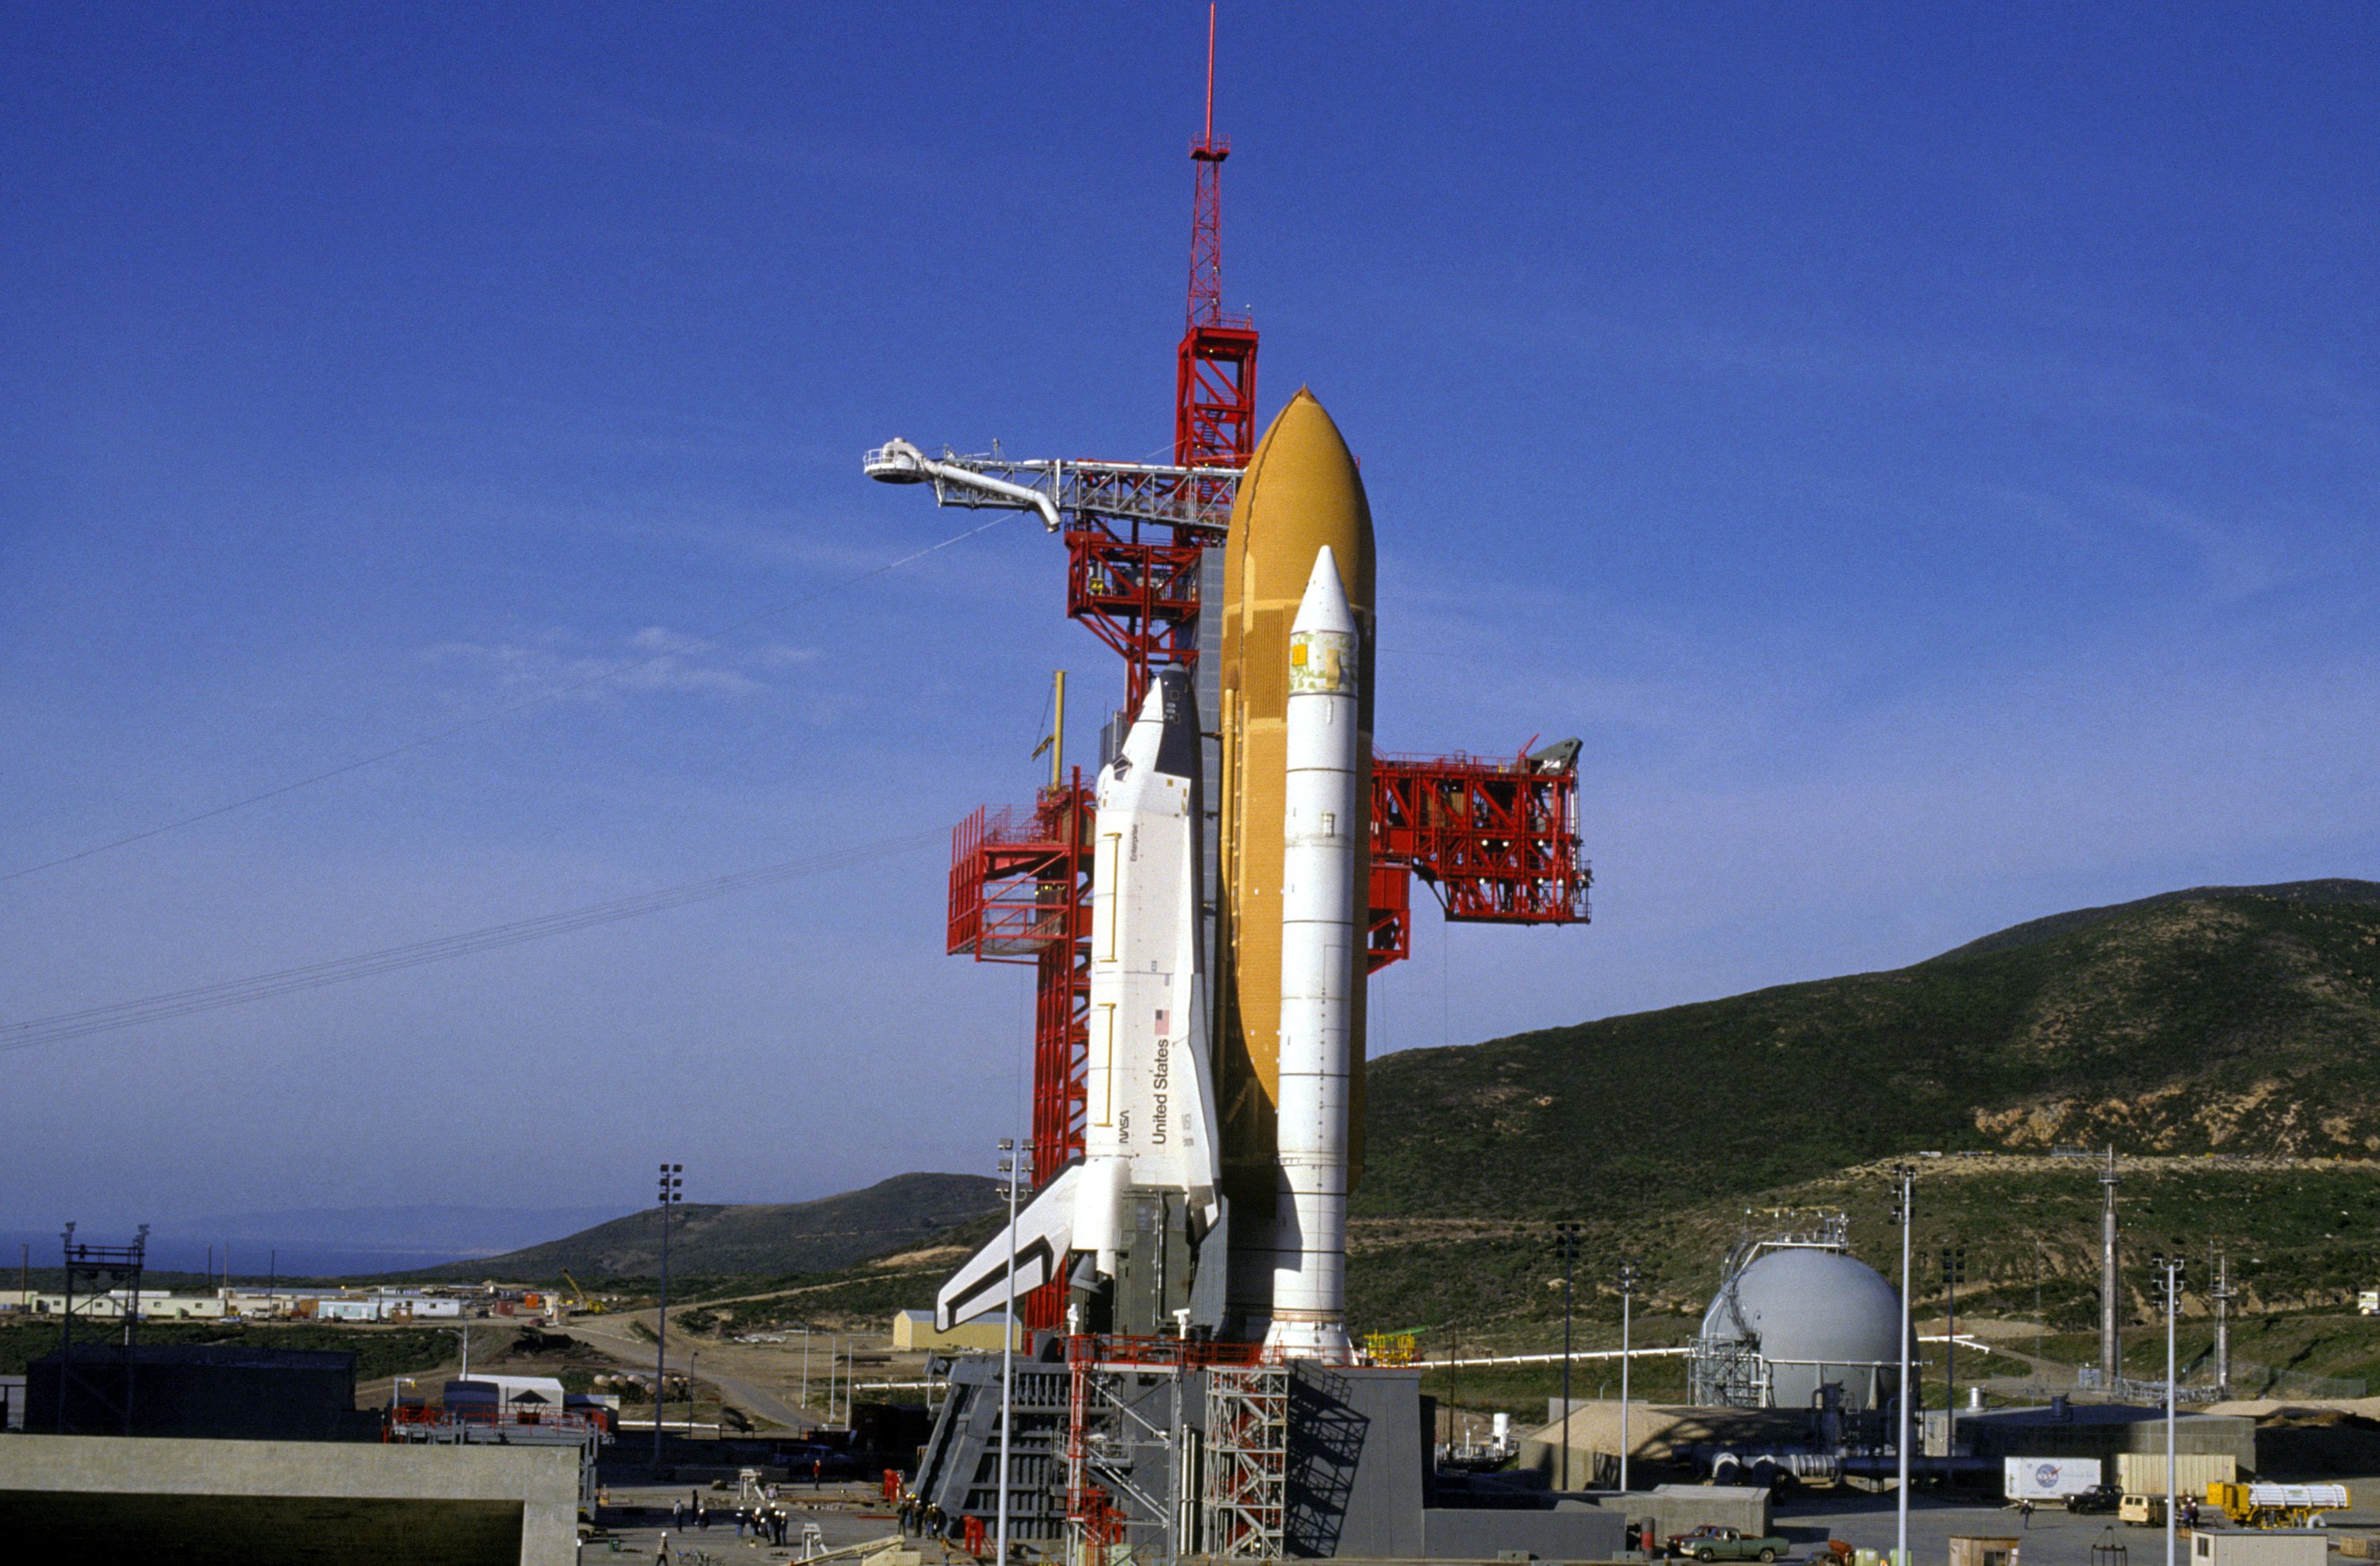 space shuttle at vandenberg - photo #8